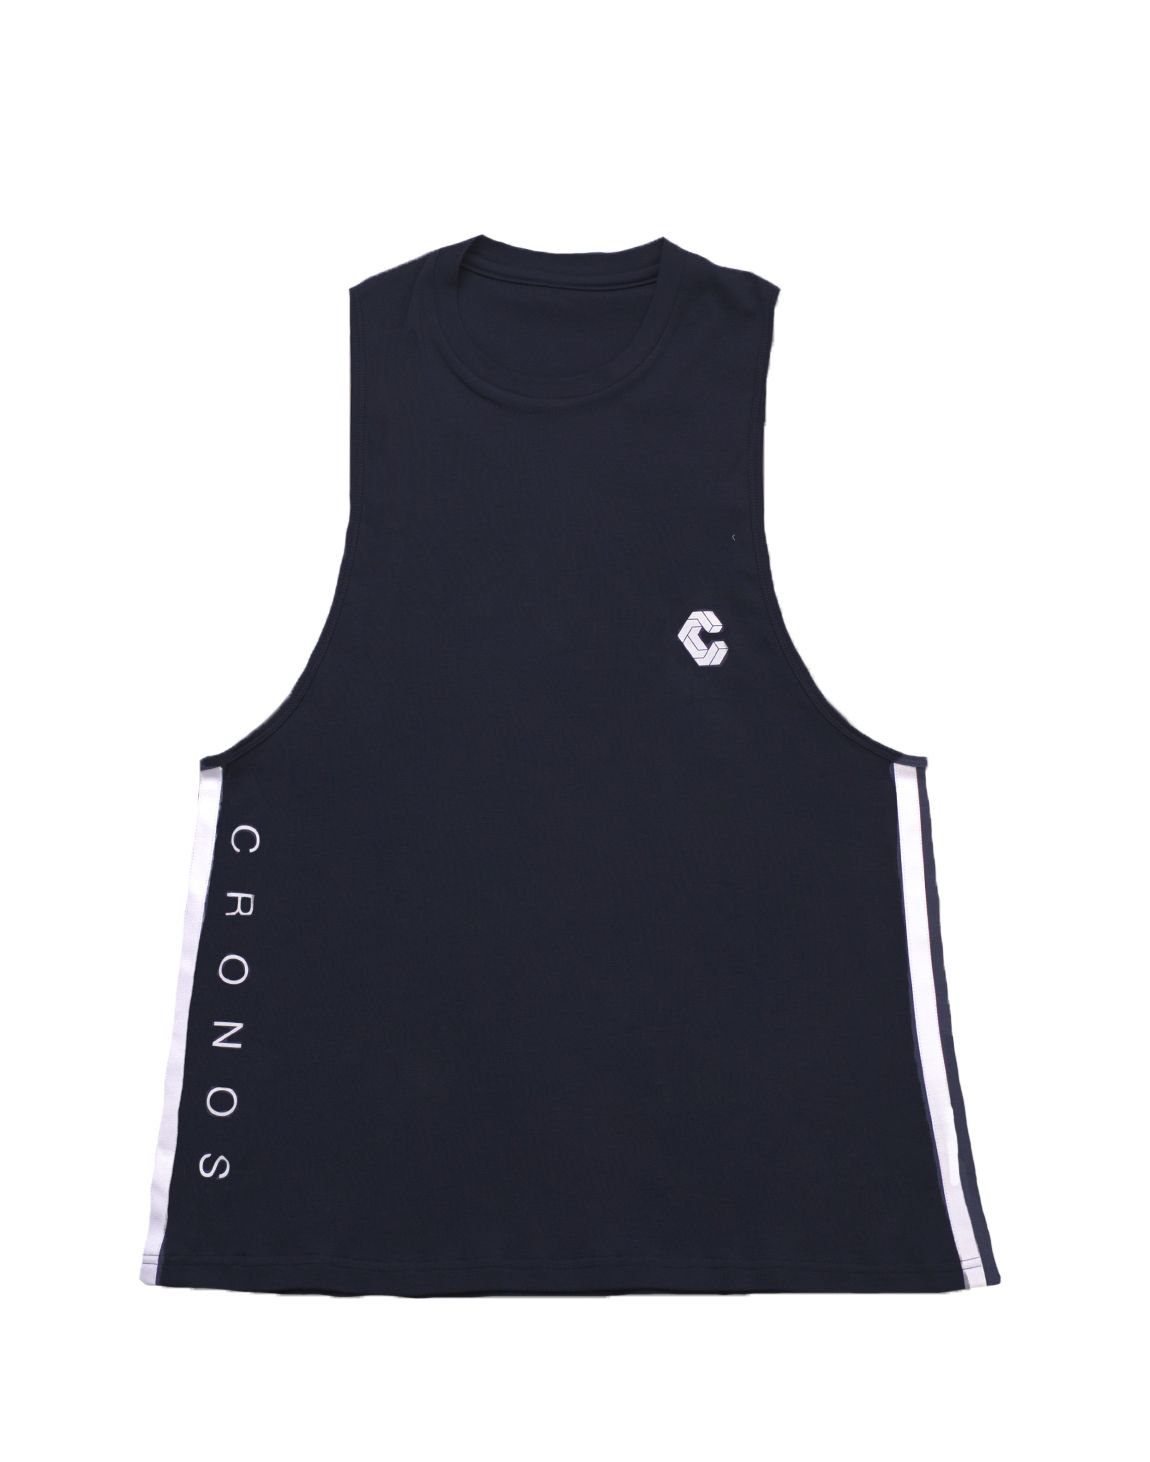 CRONOS NEW SIDE TWOLINE TANK TOP【BLACK】